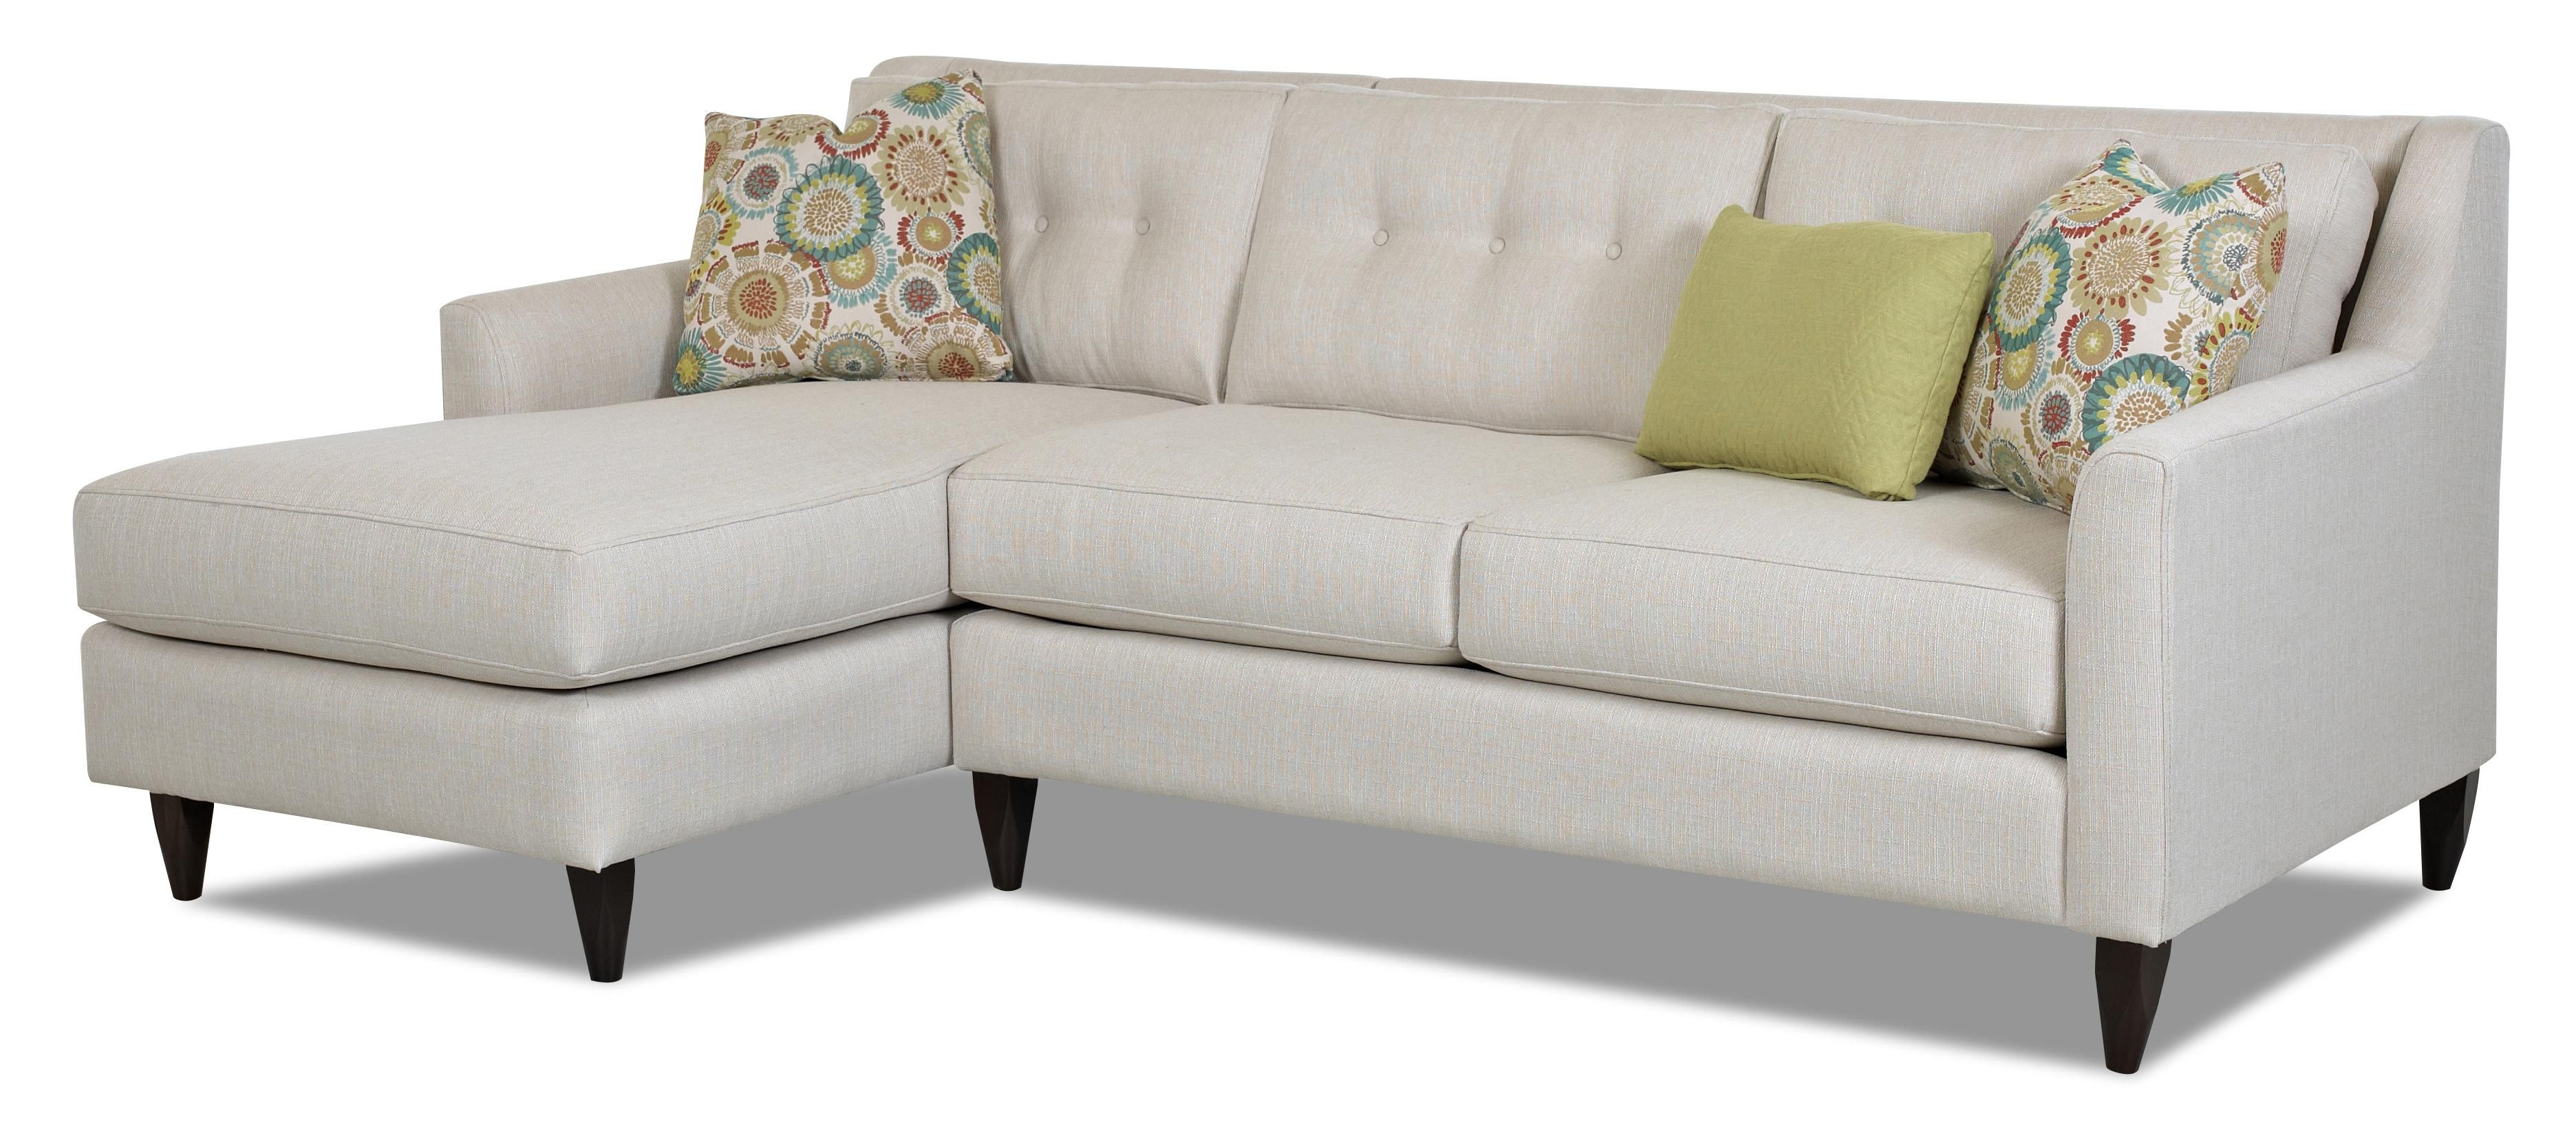 Chazy Contemporary 2 Piece Sectional Sofa With Chaise   Morris Home  Furnishings   Sofa Sectional Dayton, Cincinnati, Columbus Ohio